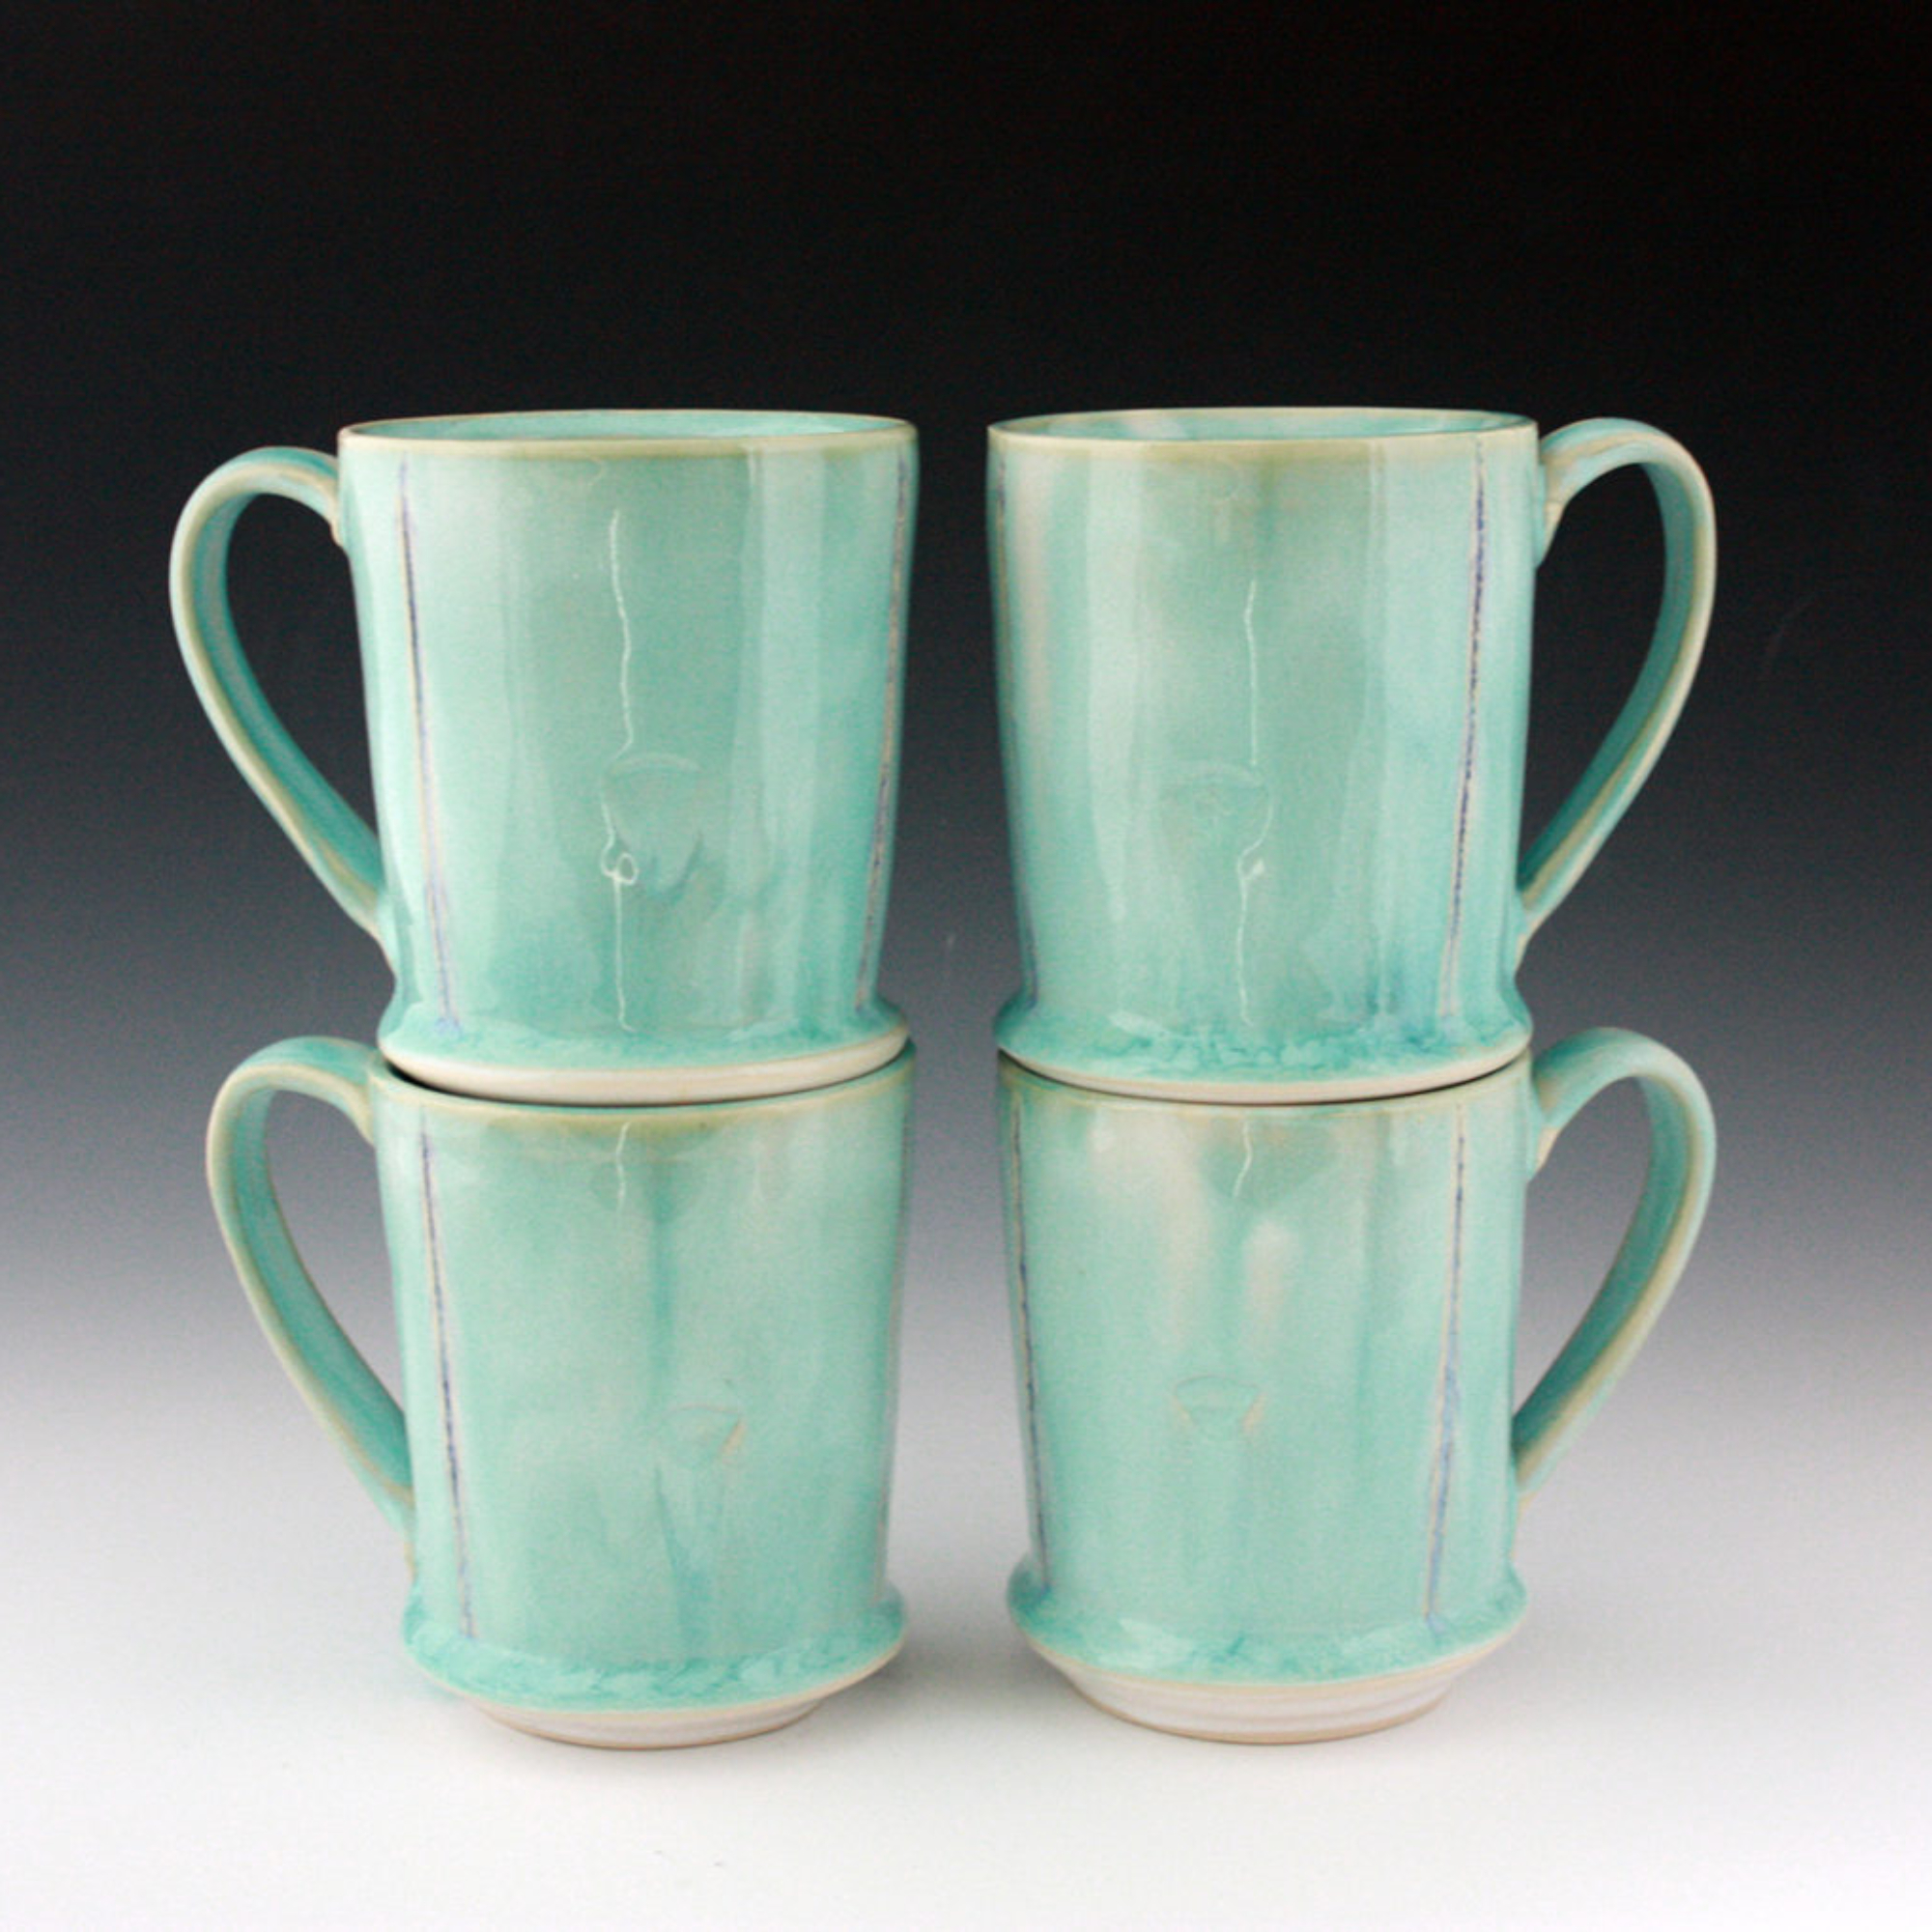 Garret Pndergrass Pottery | Fort Worth Water Garden Series